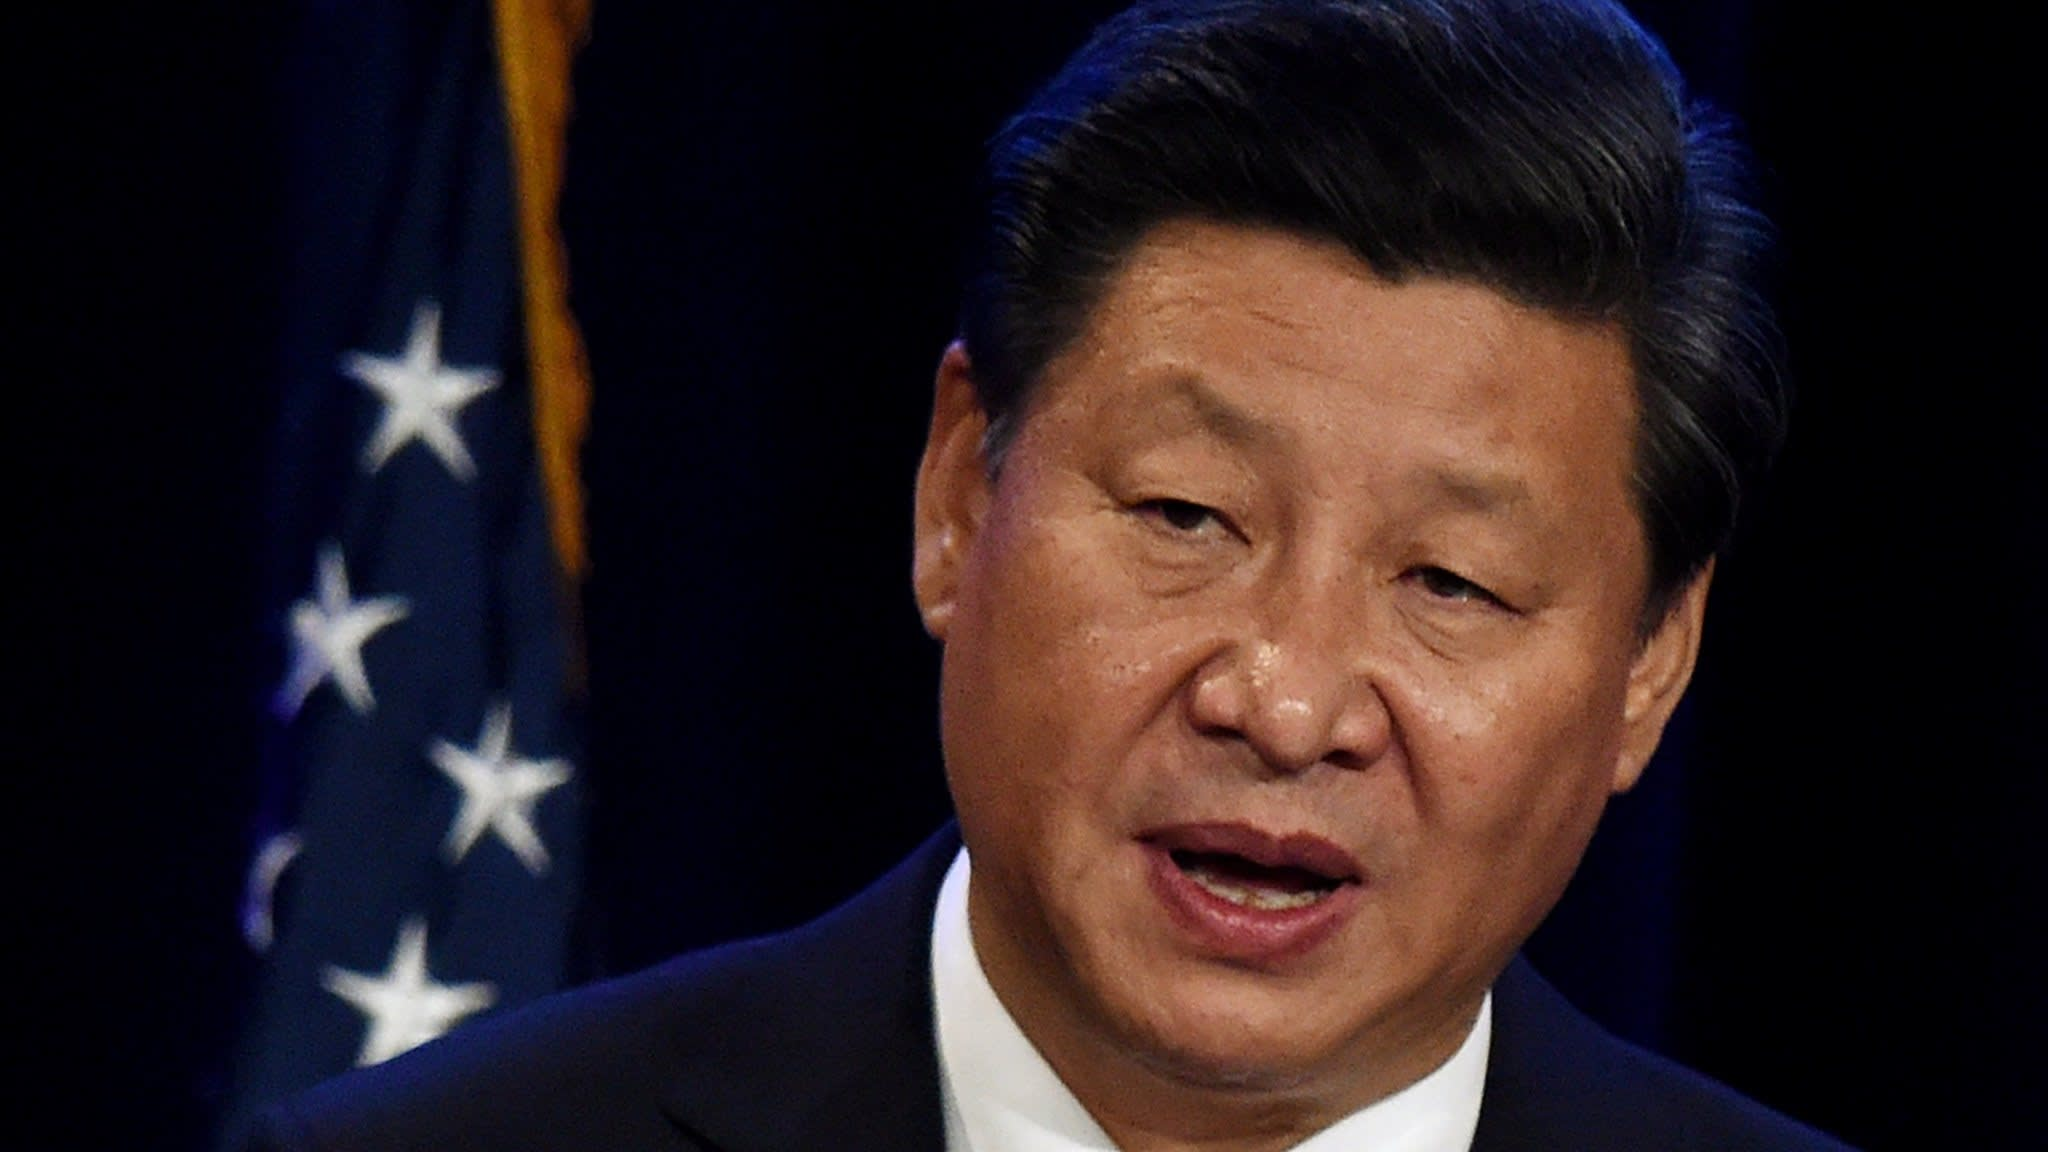 US struggles to get to grips with Xi | Financial Times